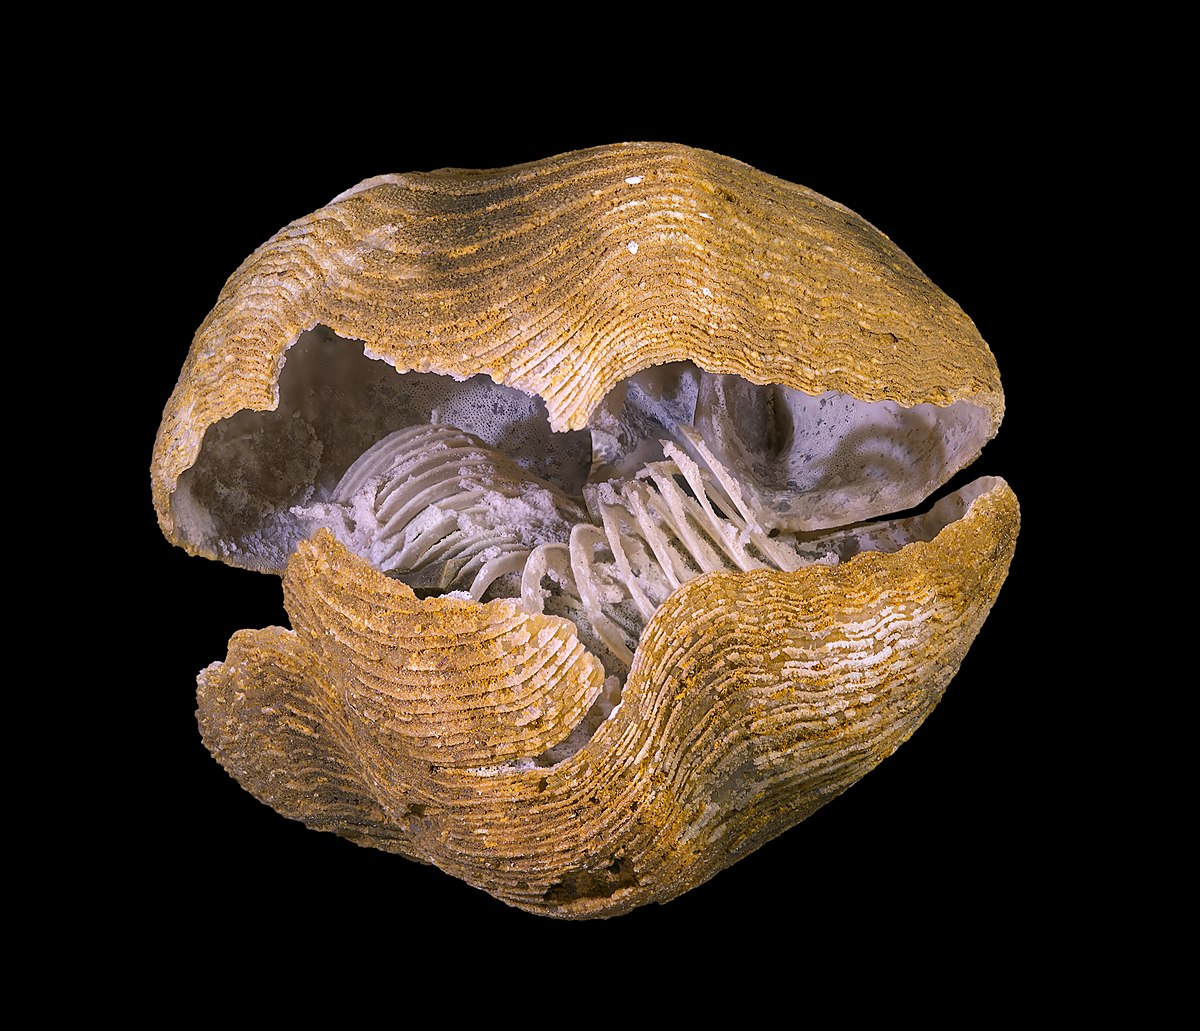 brachiopod simple english wikipedia the free encyclopedia